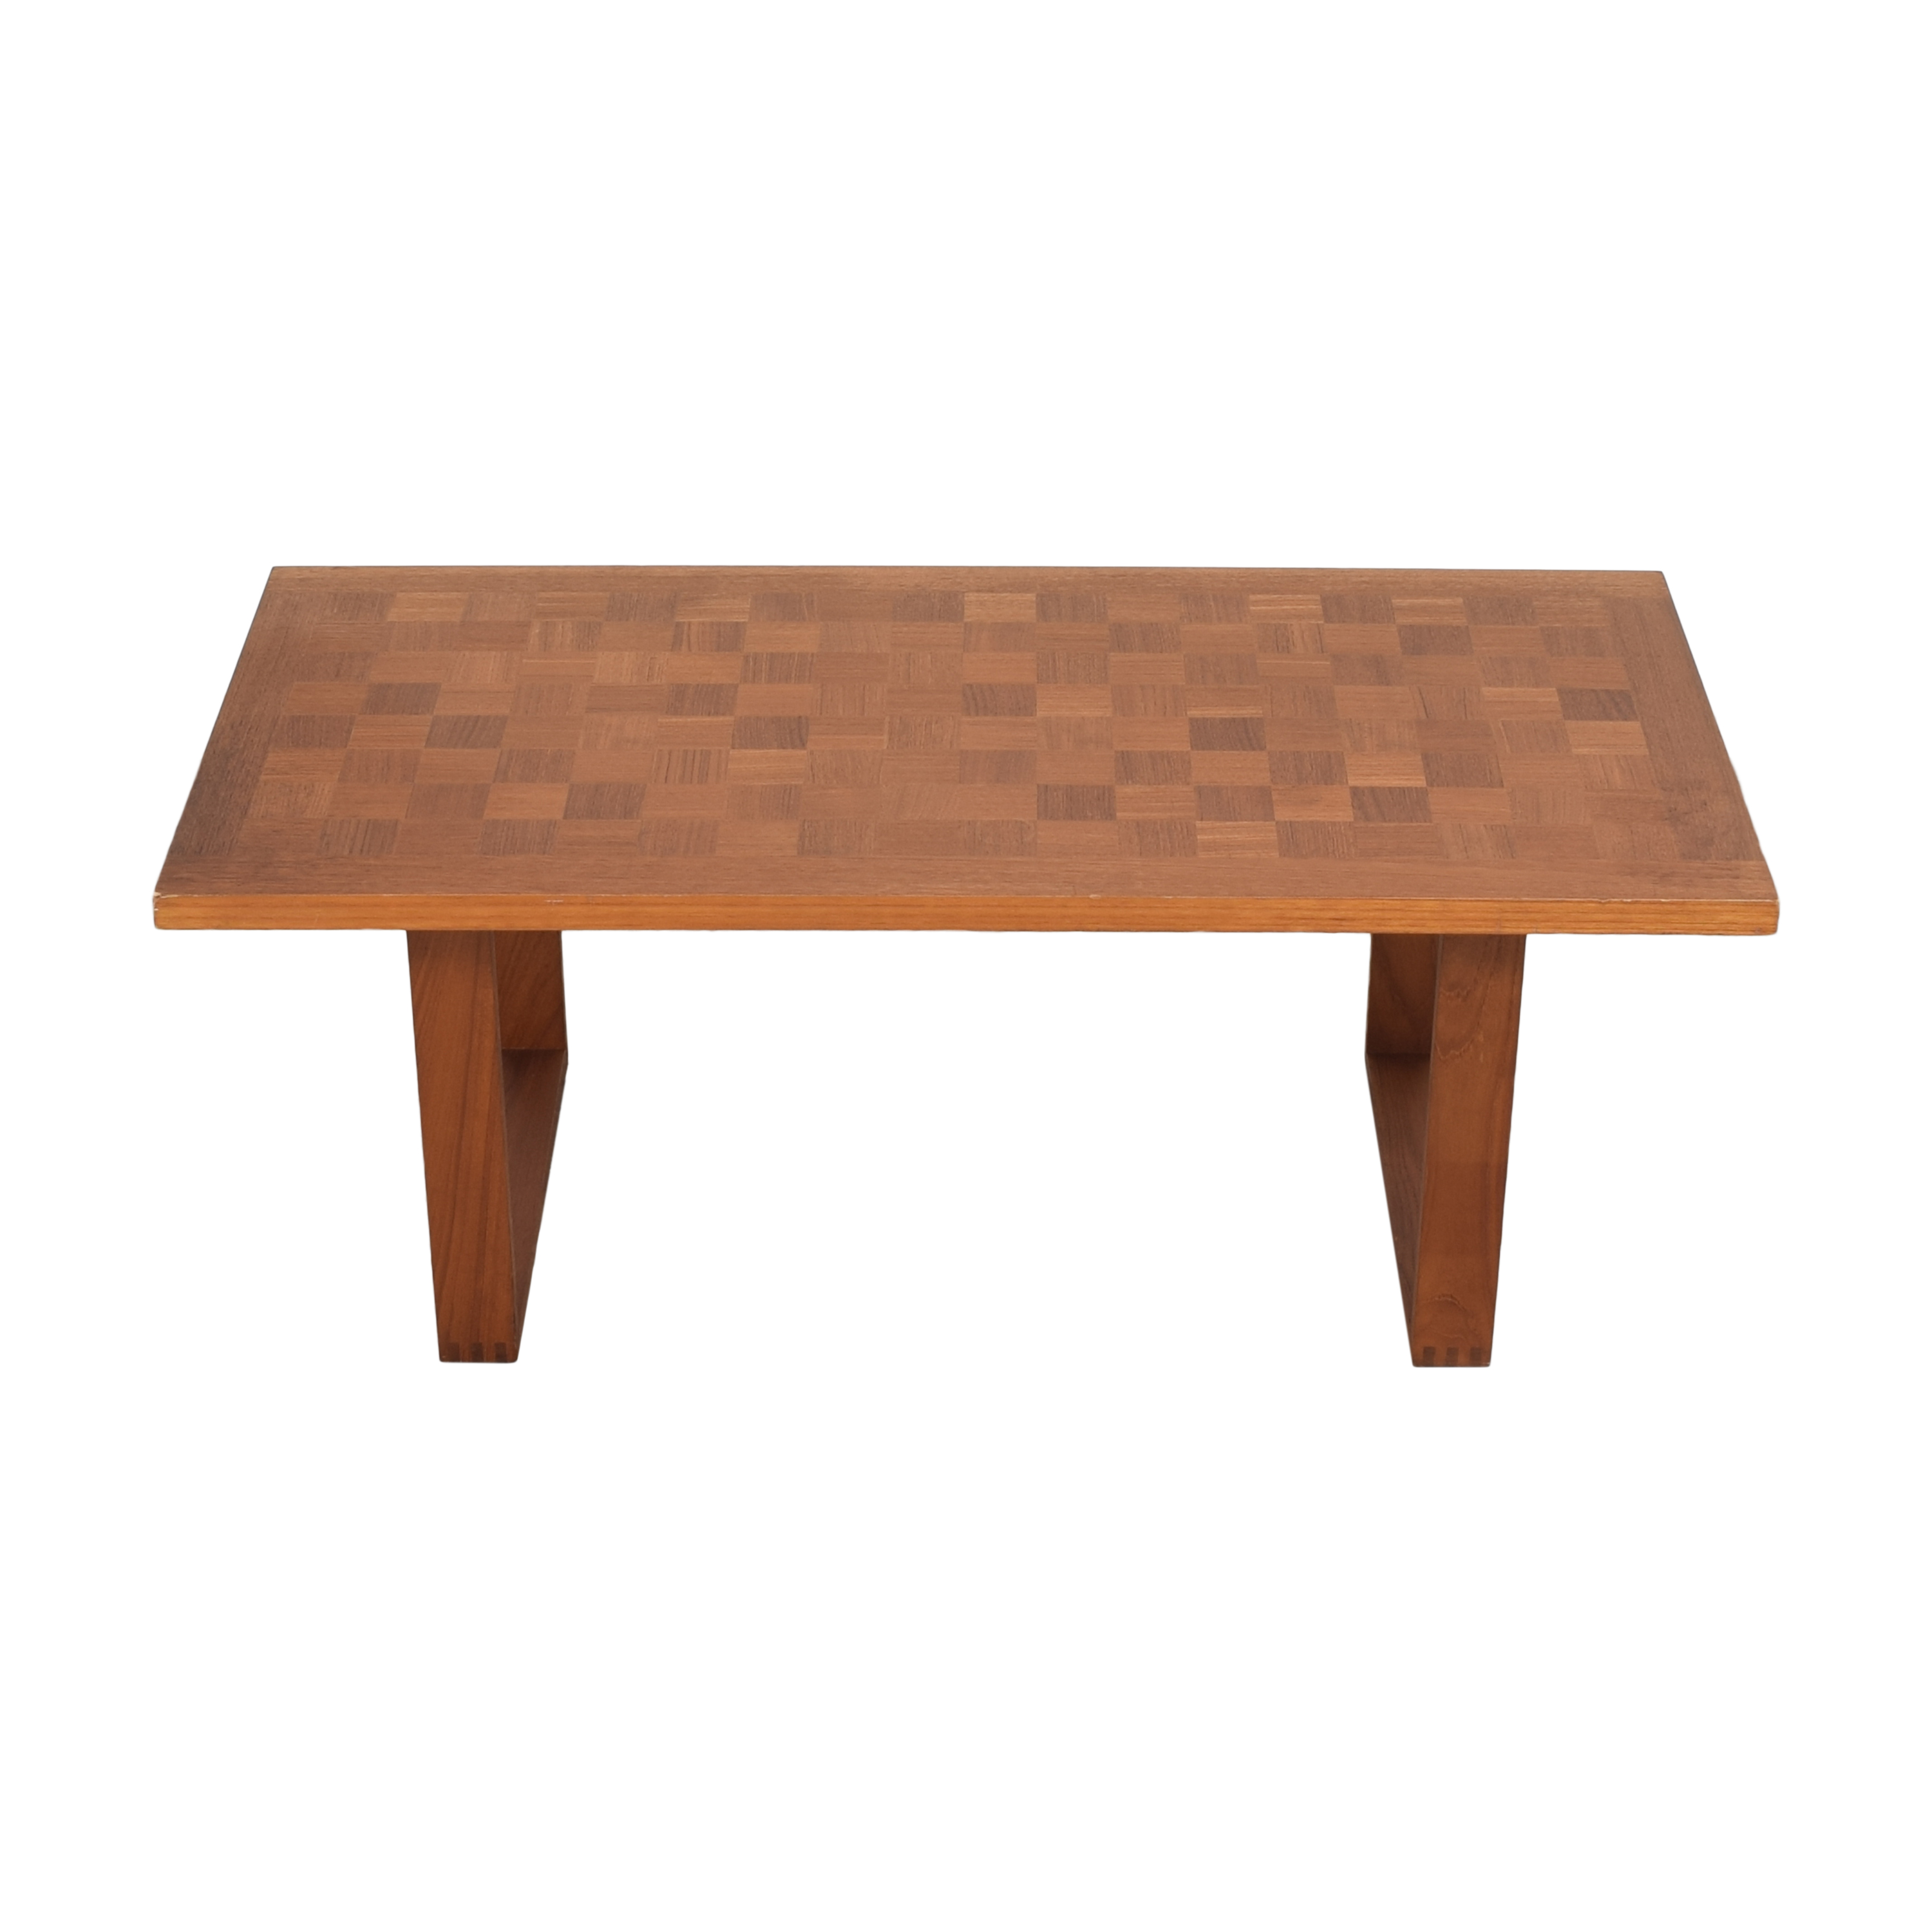 France and Son France and Son Checkerboard Coffee Table pa